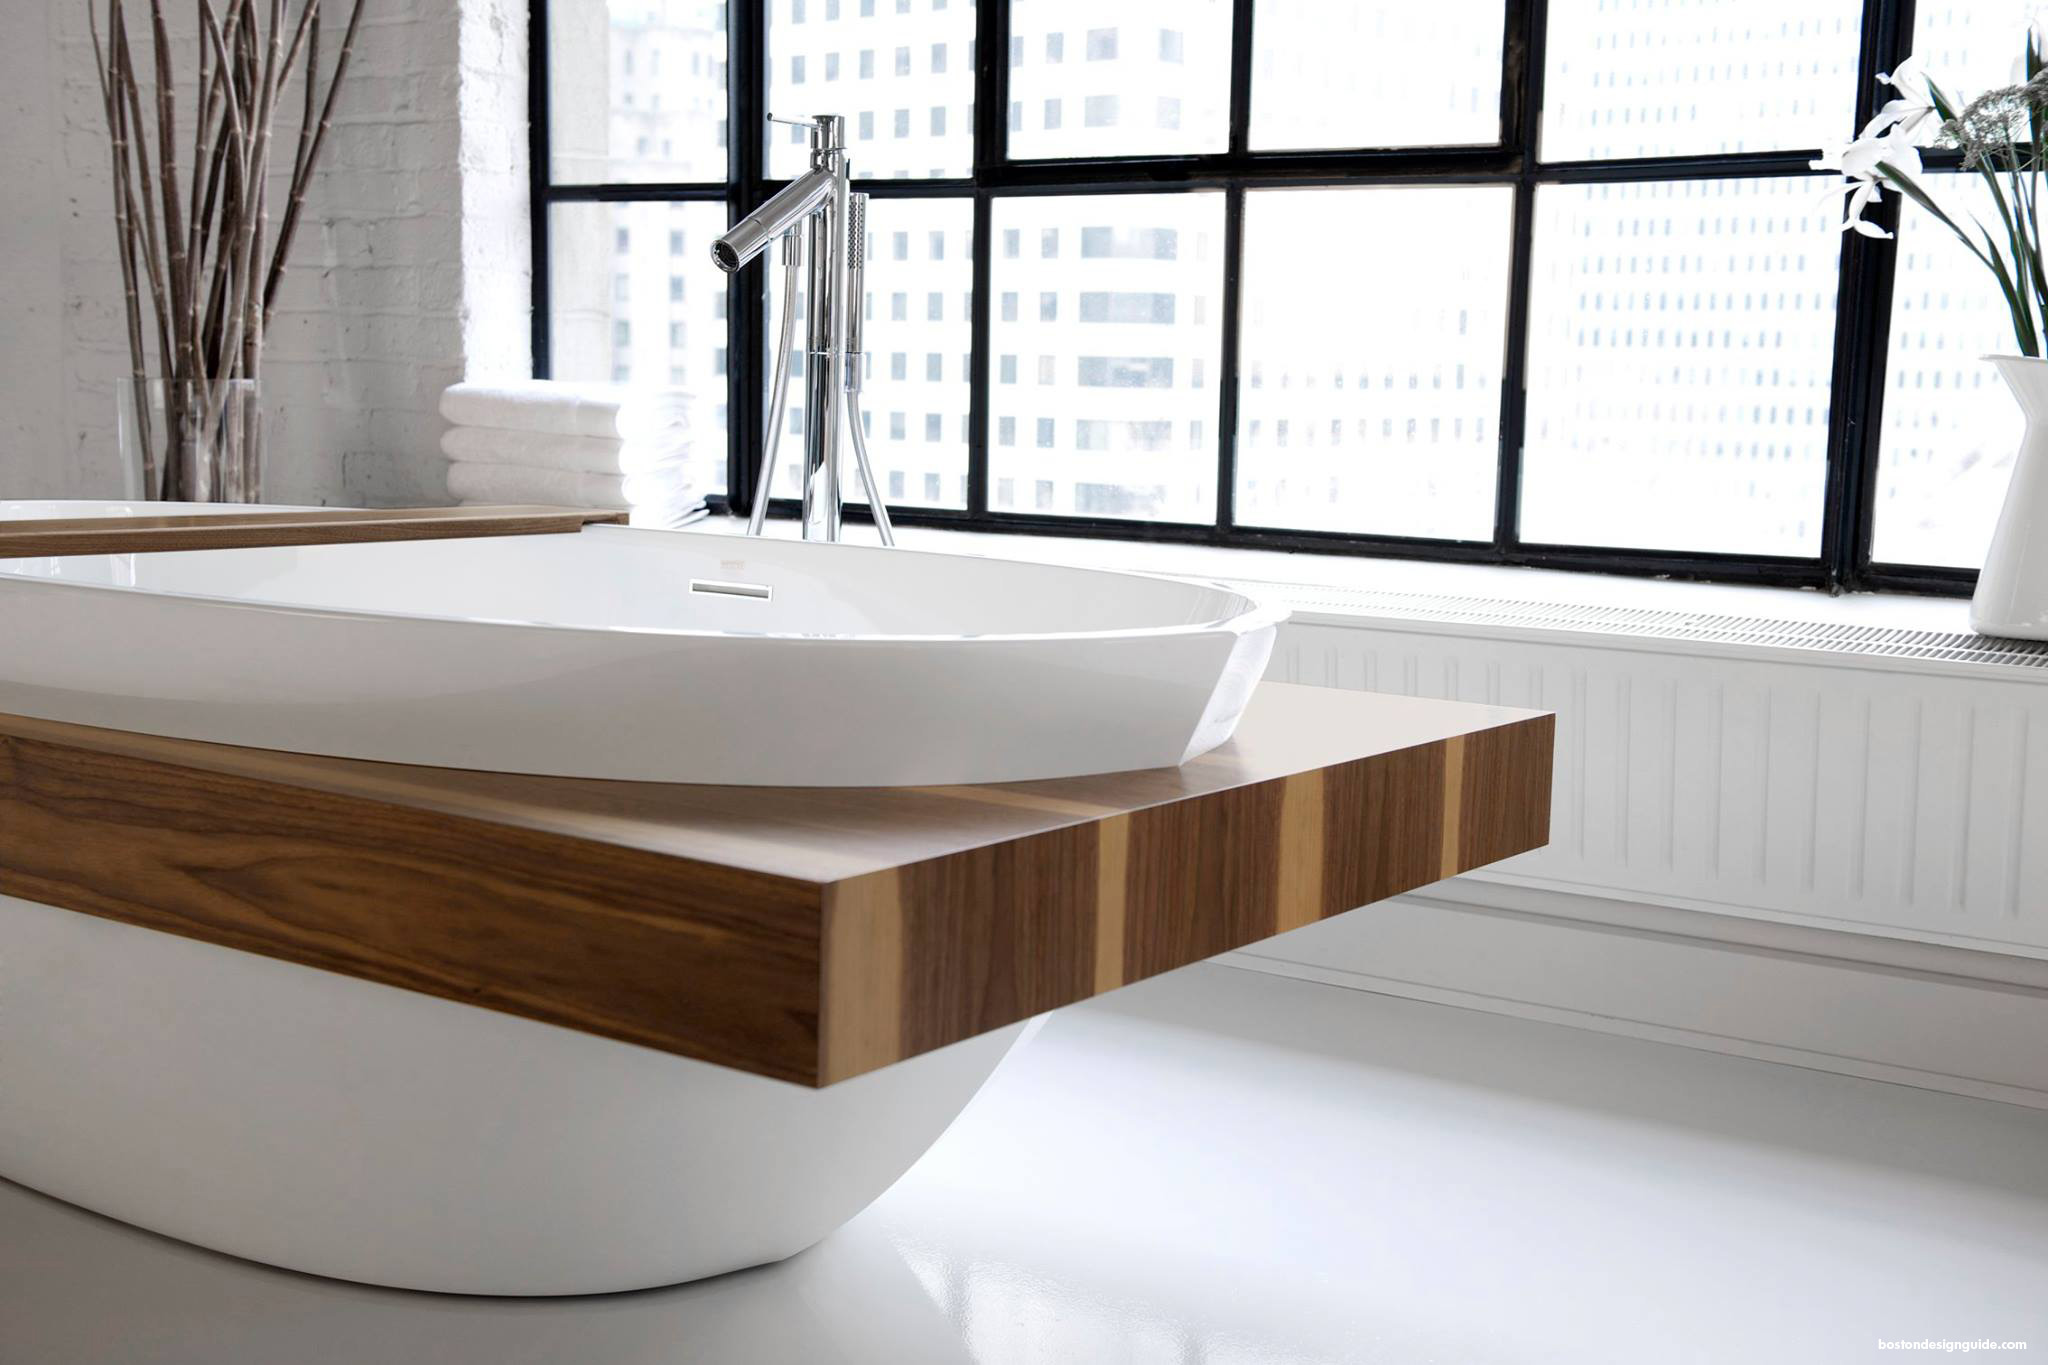 Designer Bathtub designer bath and salem plumbing supply